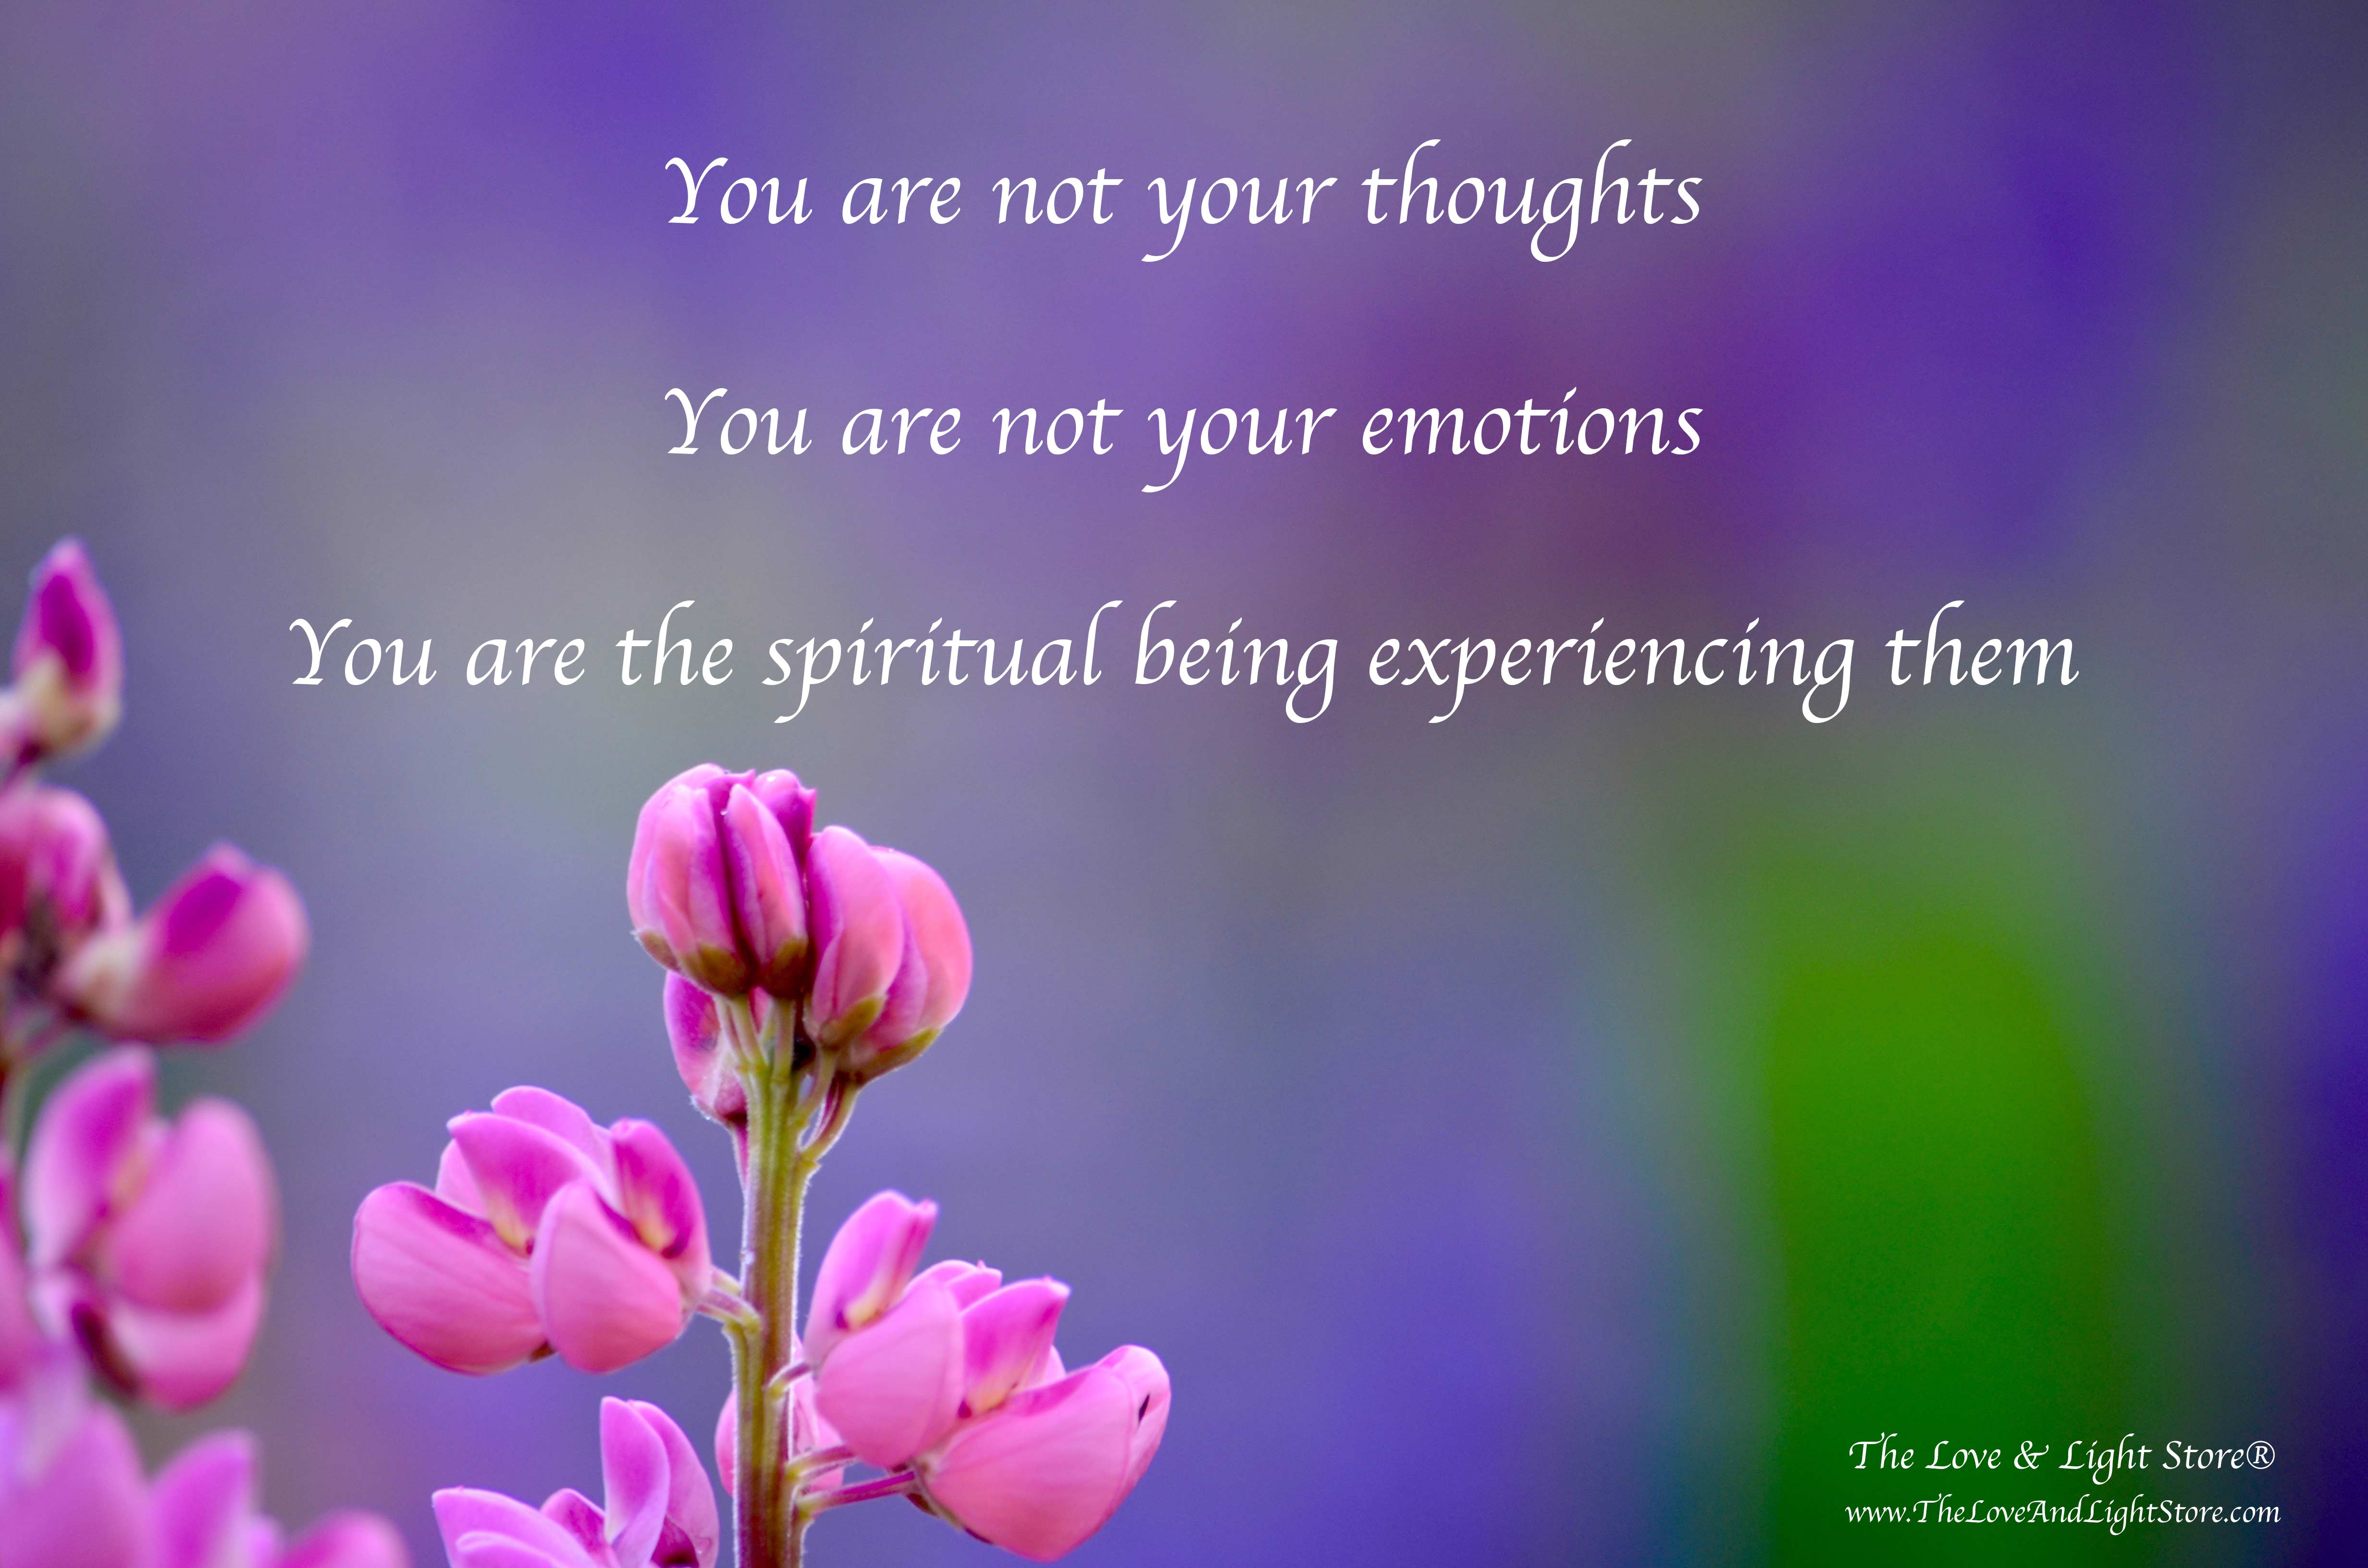 You are not your thoughts nor your emotions